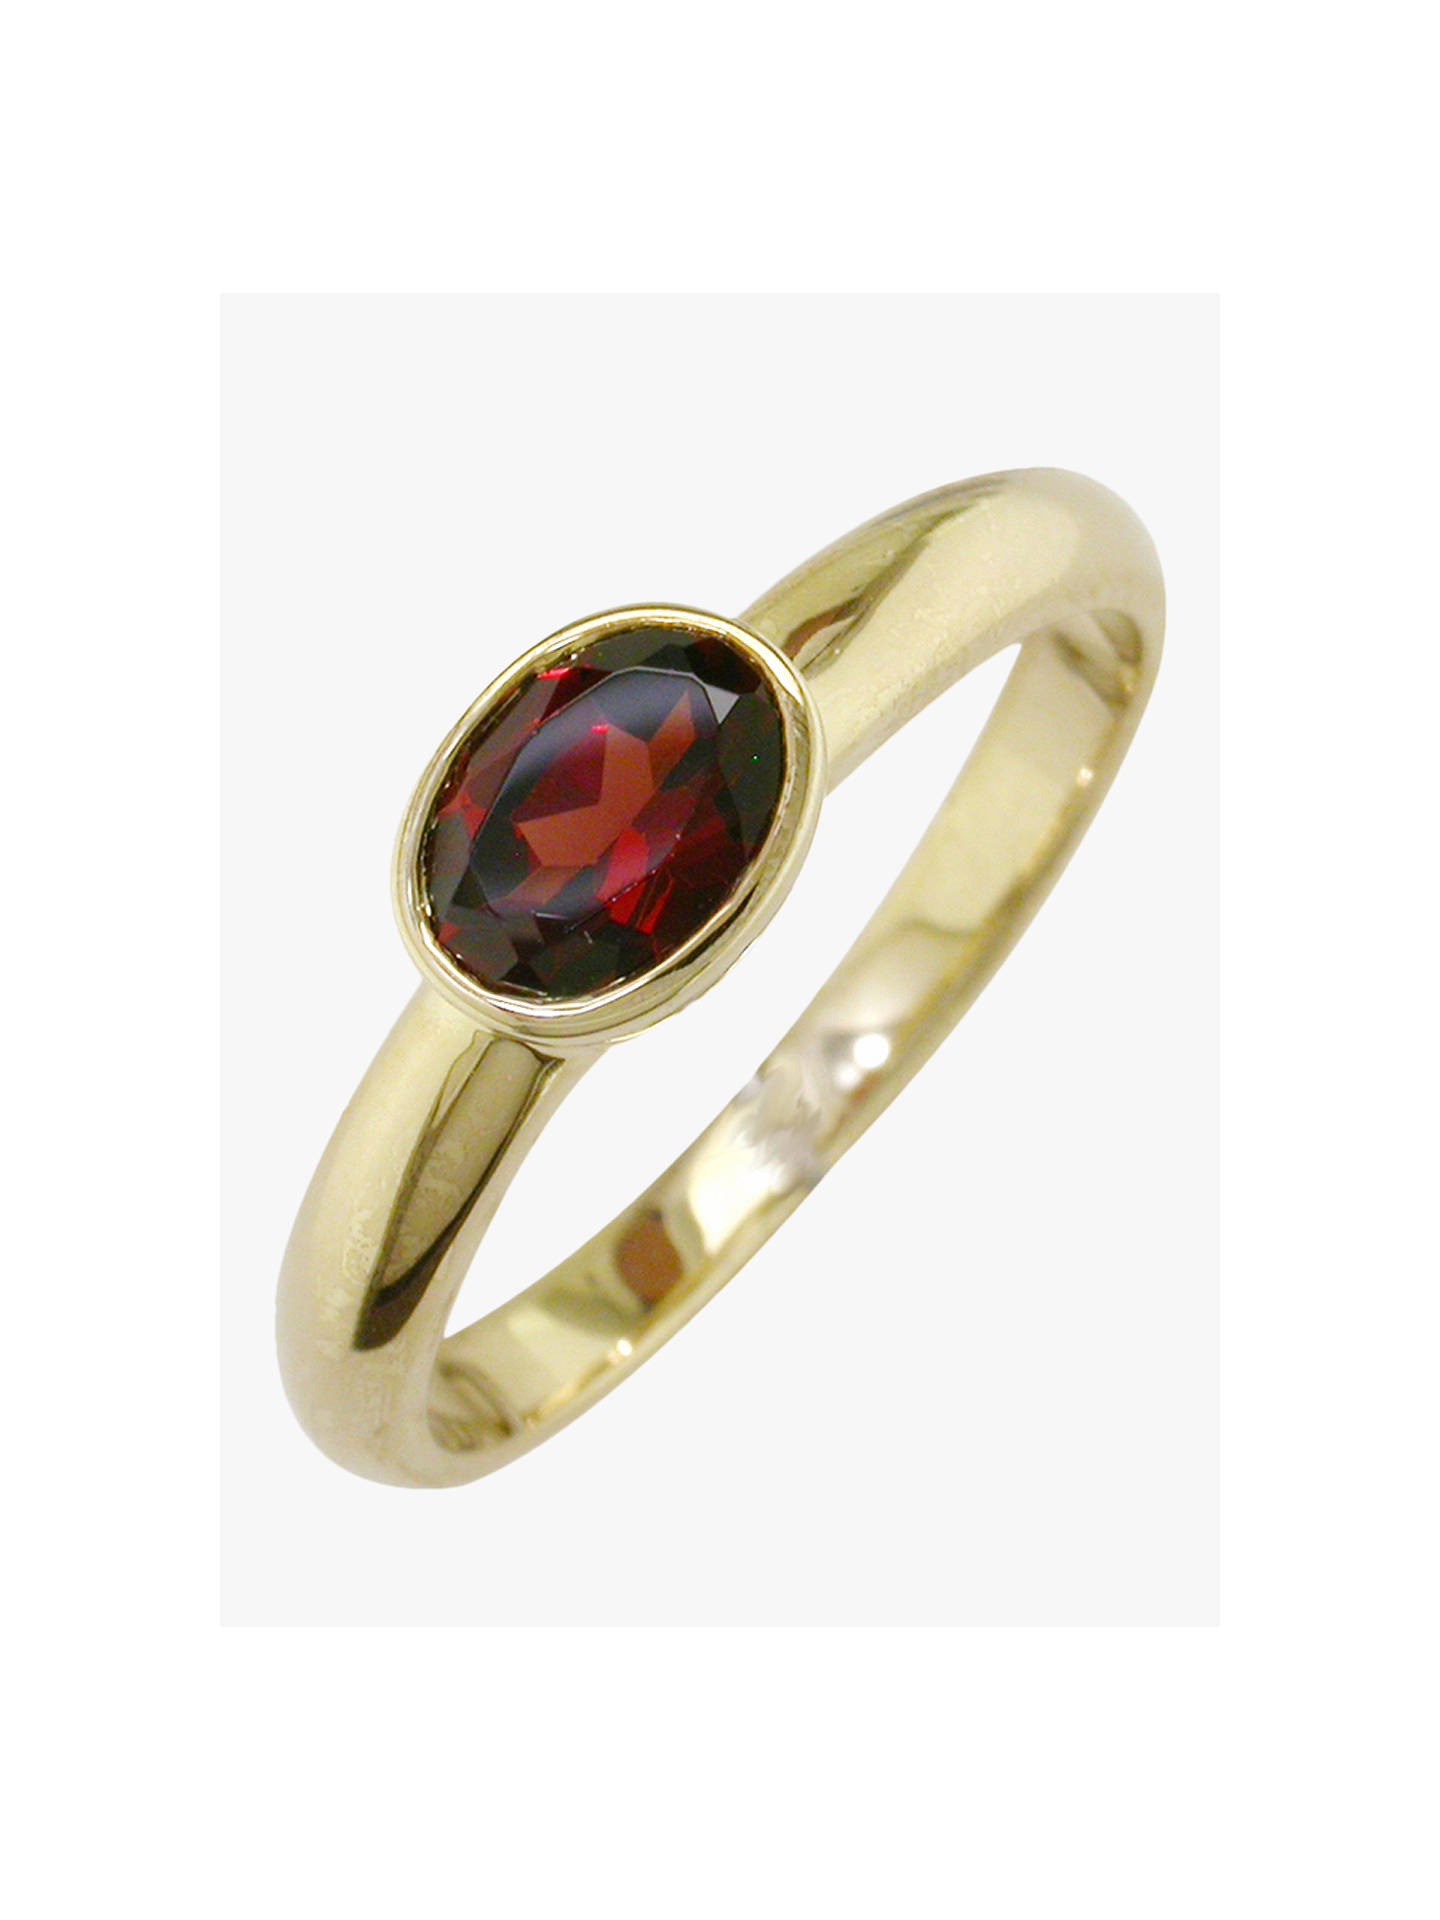 BuyEWA 9ct Gold Rub Over Oval Ring, N, Garnet Online at johnlewis.com